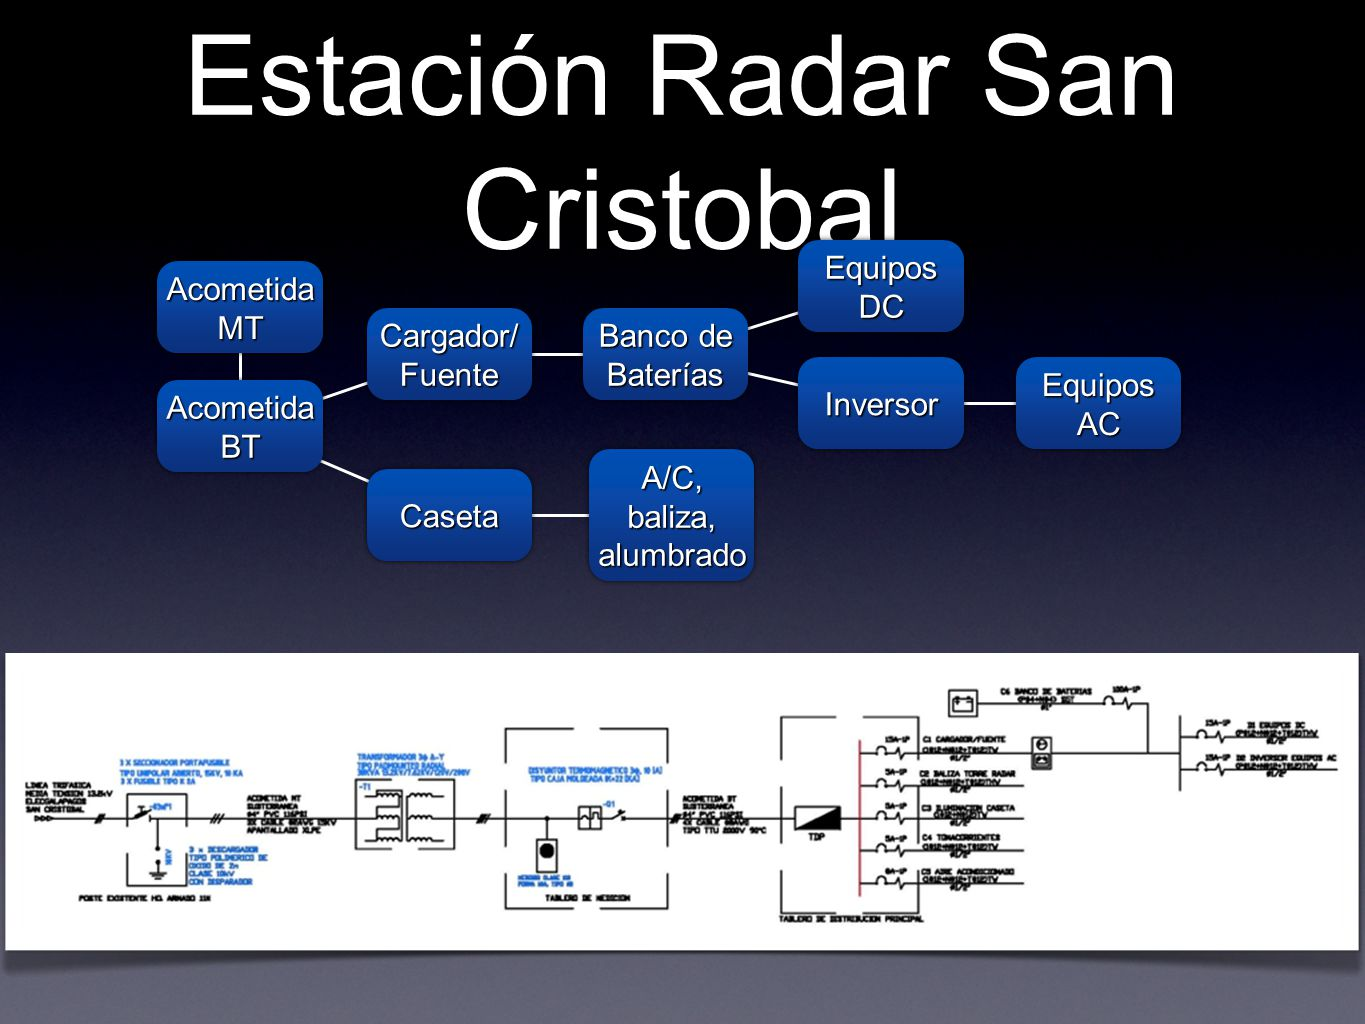 Estación Radar San Cristobal